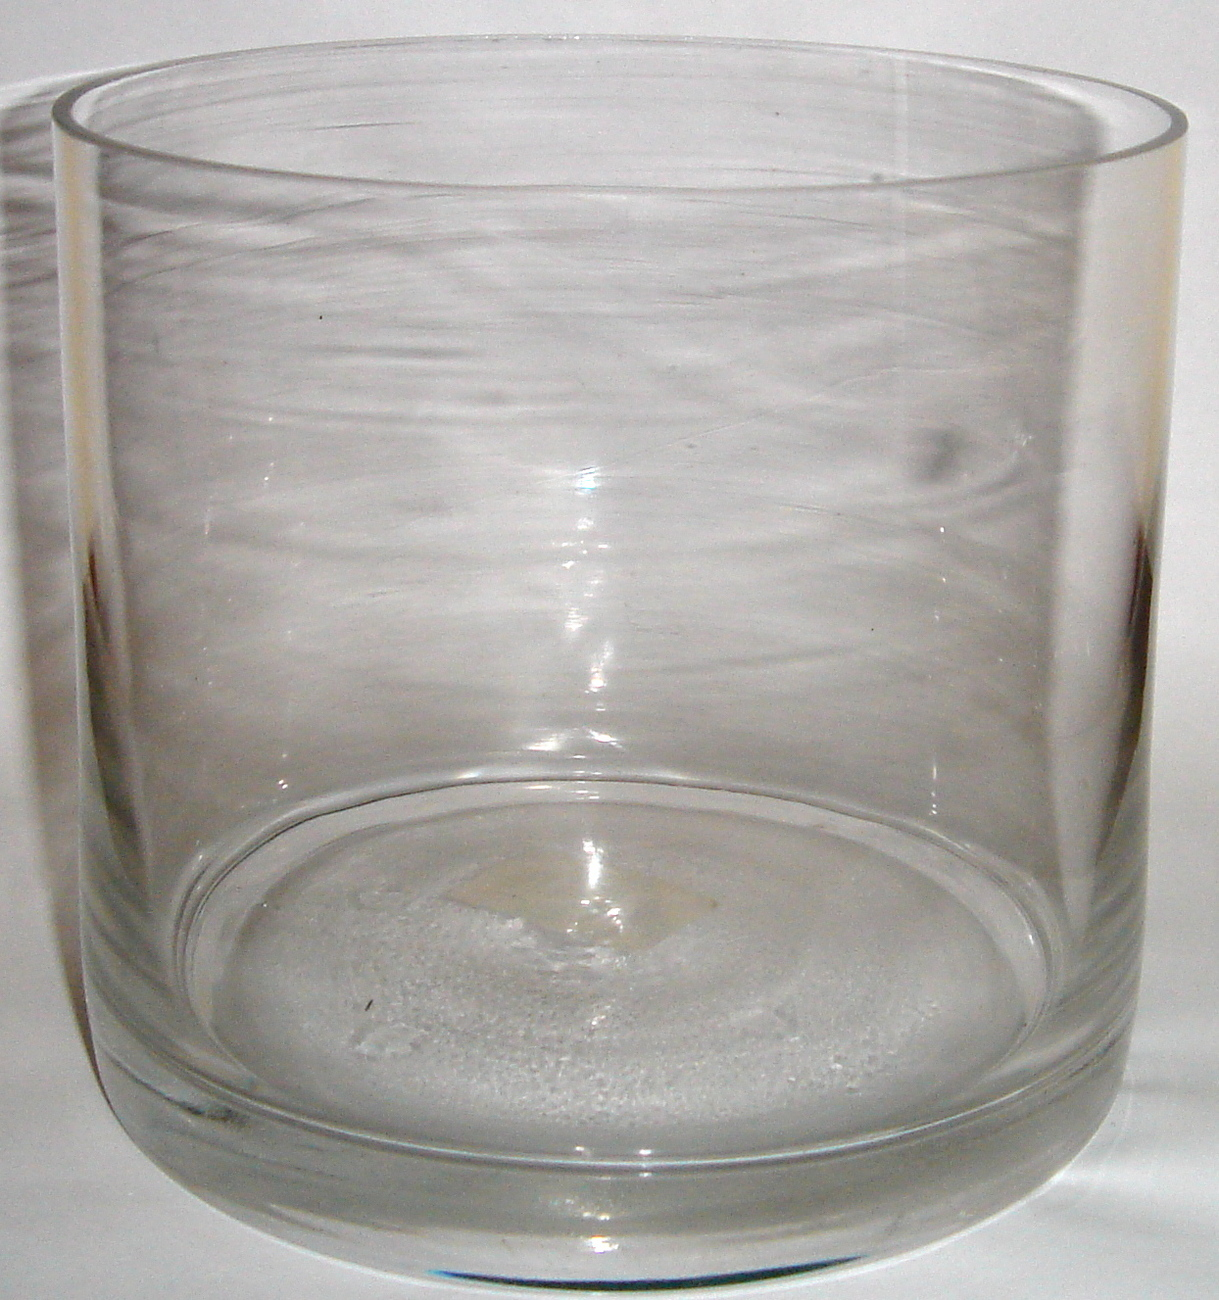 Clear Glass Round Flower Vase 4 5 High Vases - Vase Glas Rund